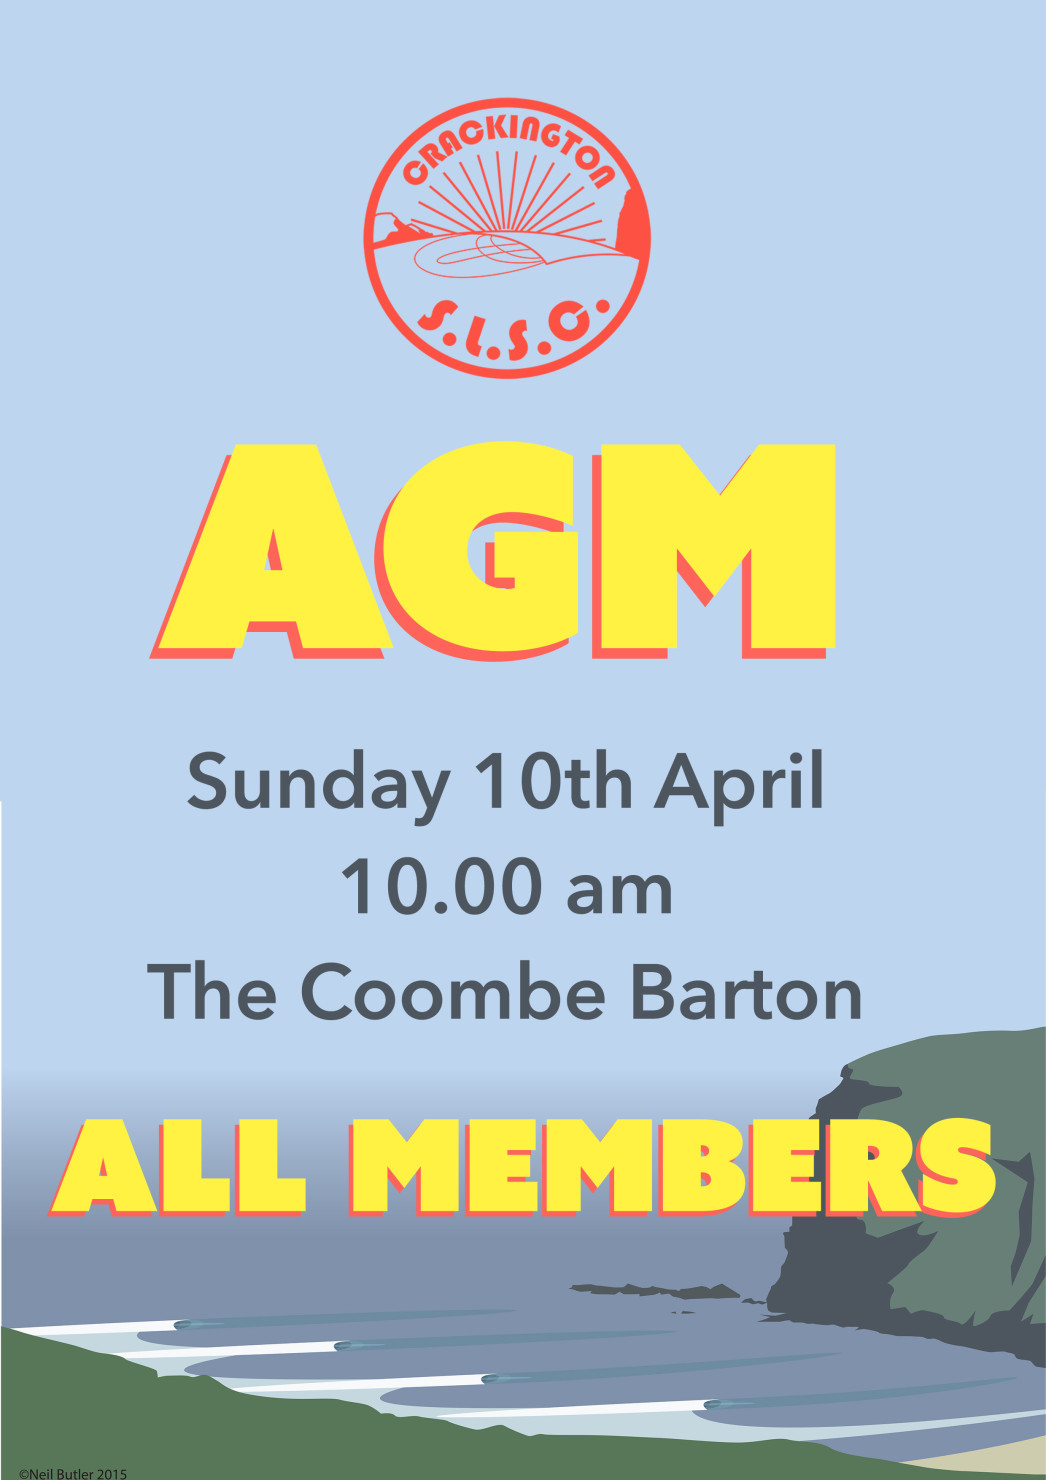 crackington slsc agm 2